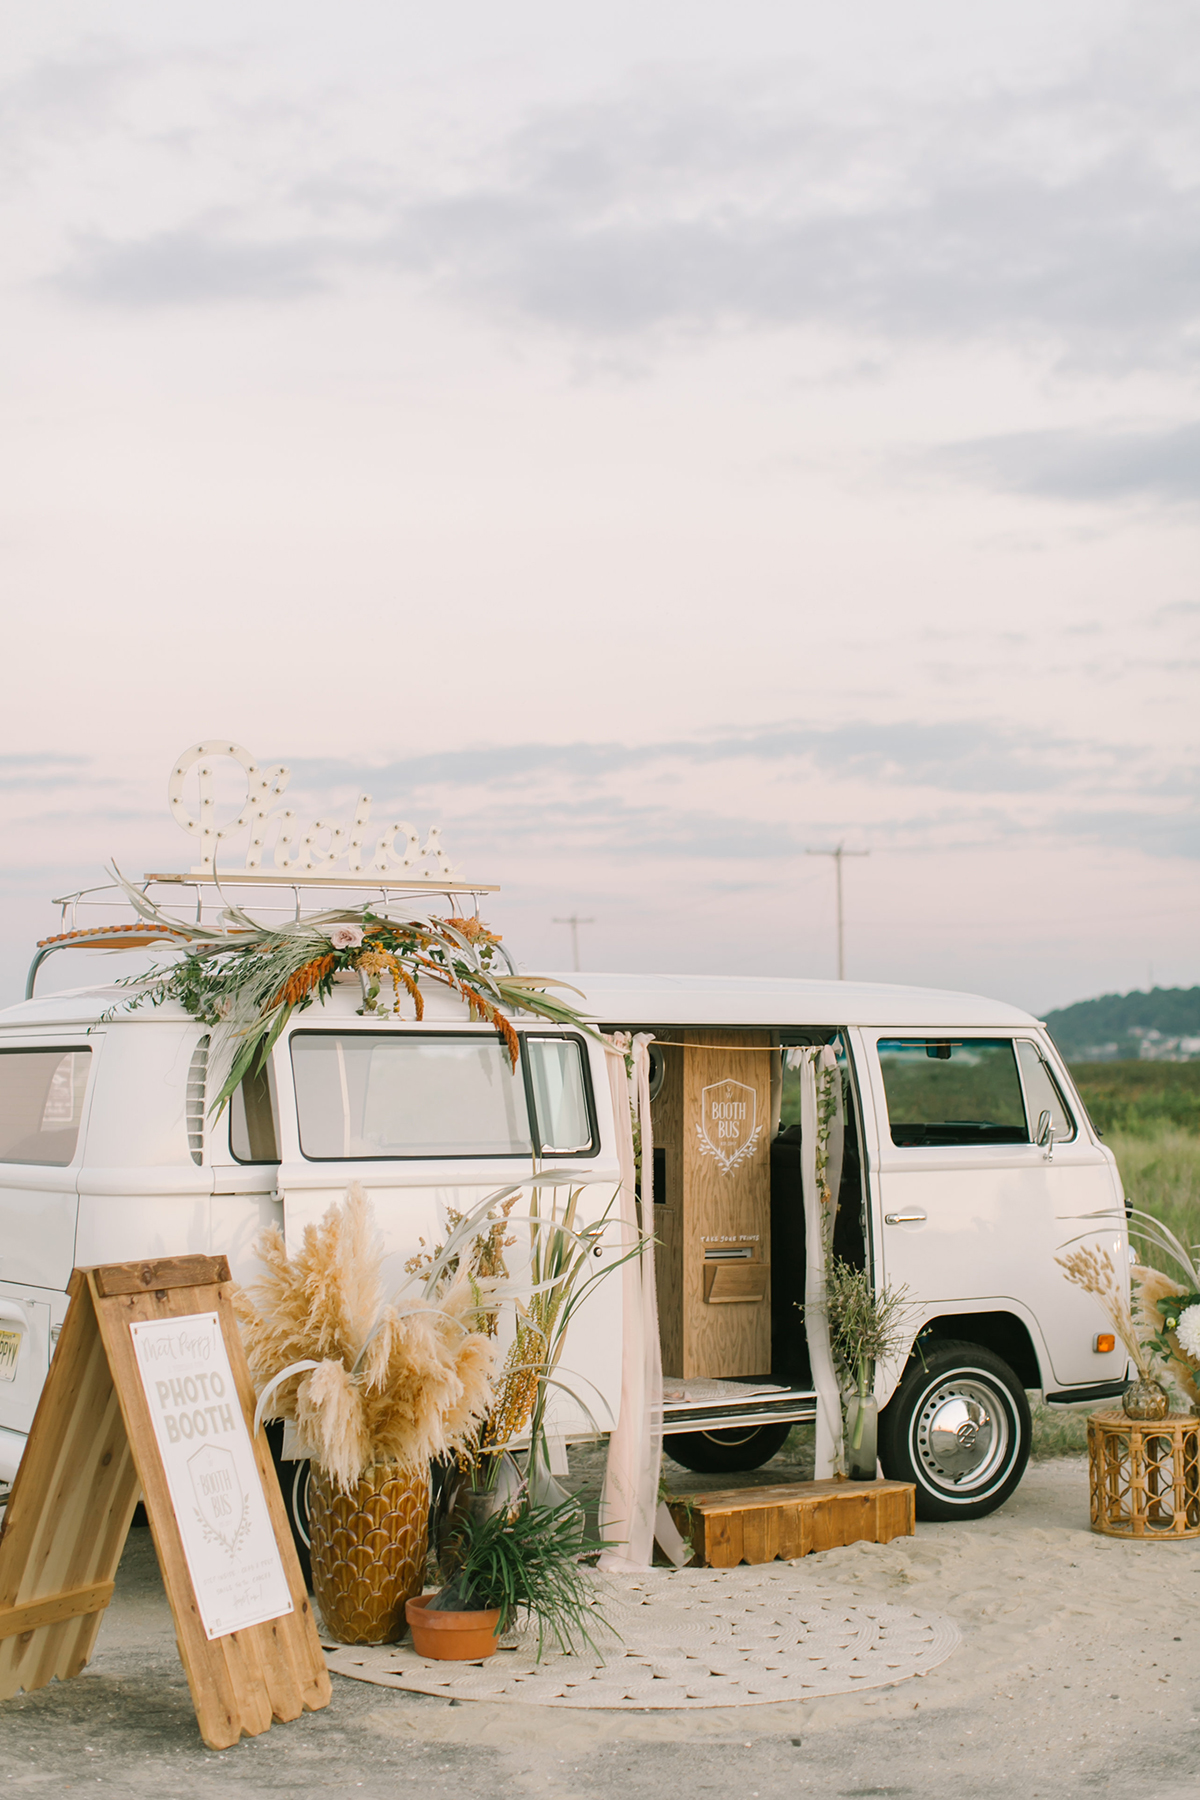 VW photo booth bus - https://ruffledblog.com/september-sunsets-wedding-inspiration-with-a-vw-bus